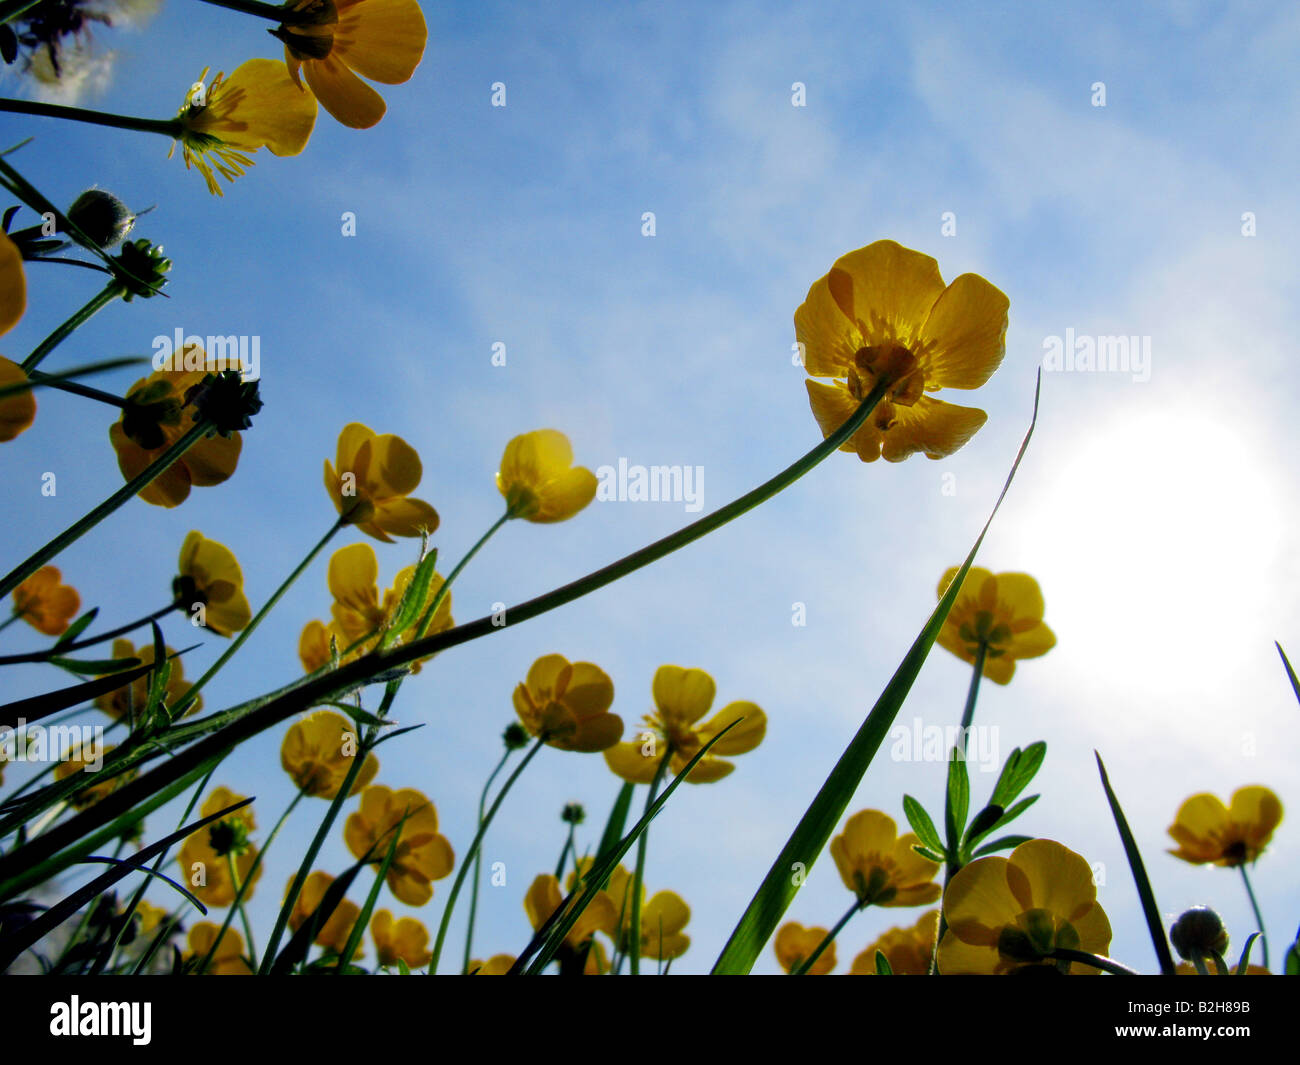 buttercups against the sky - Stock Image